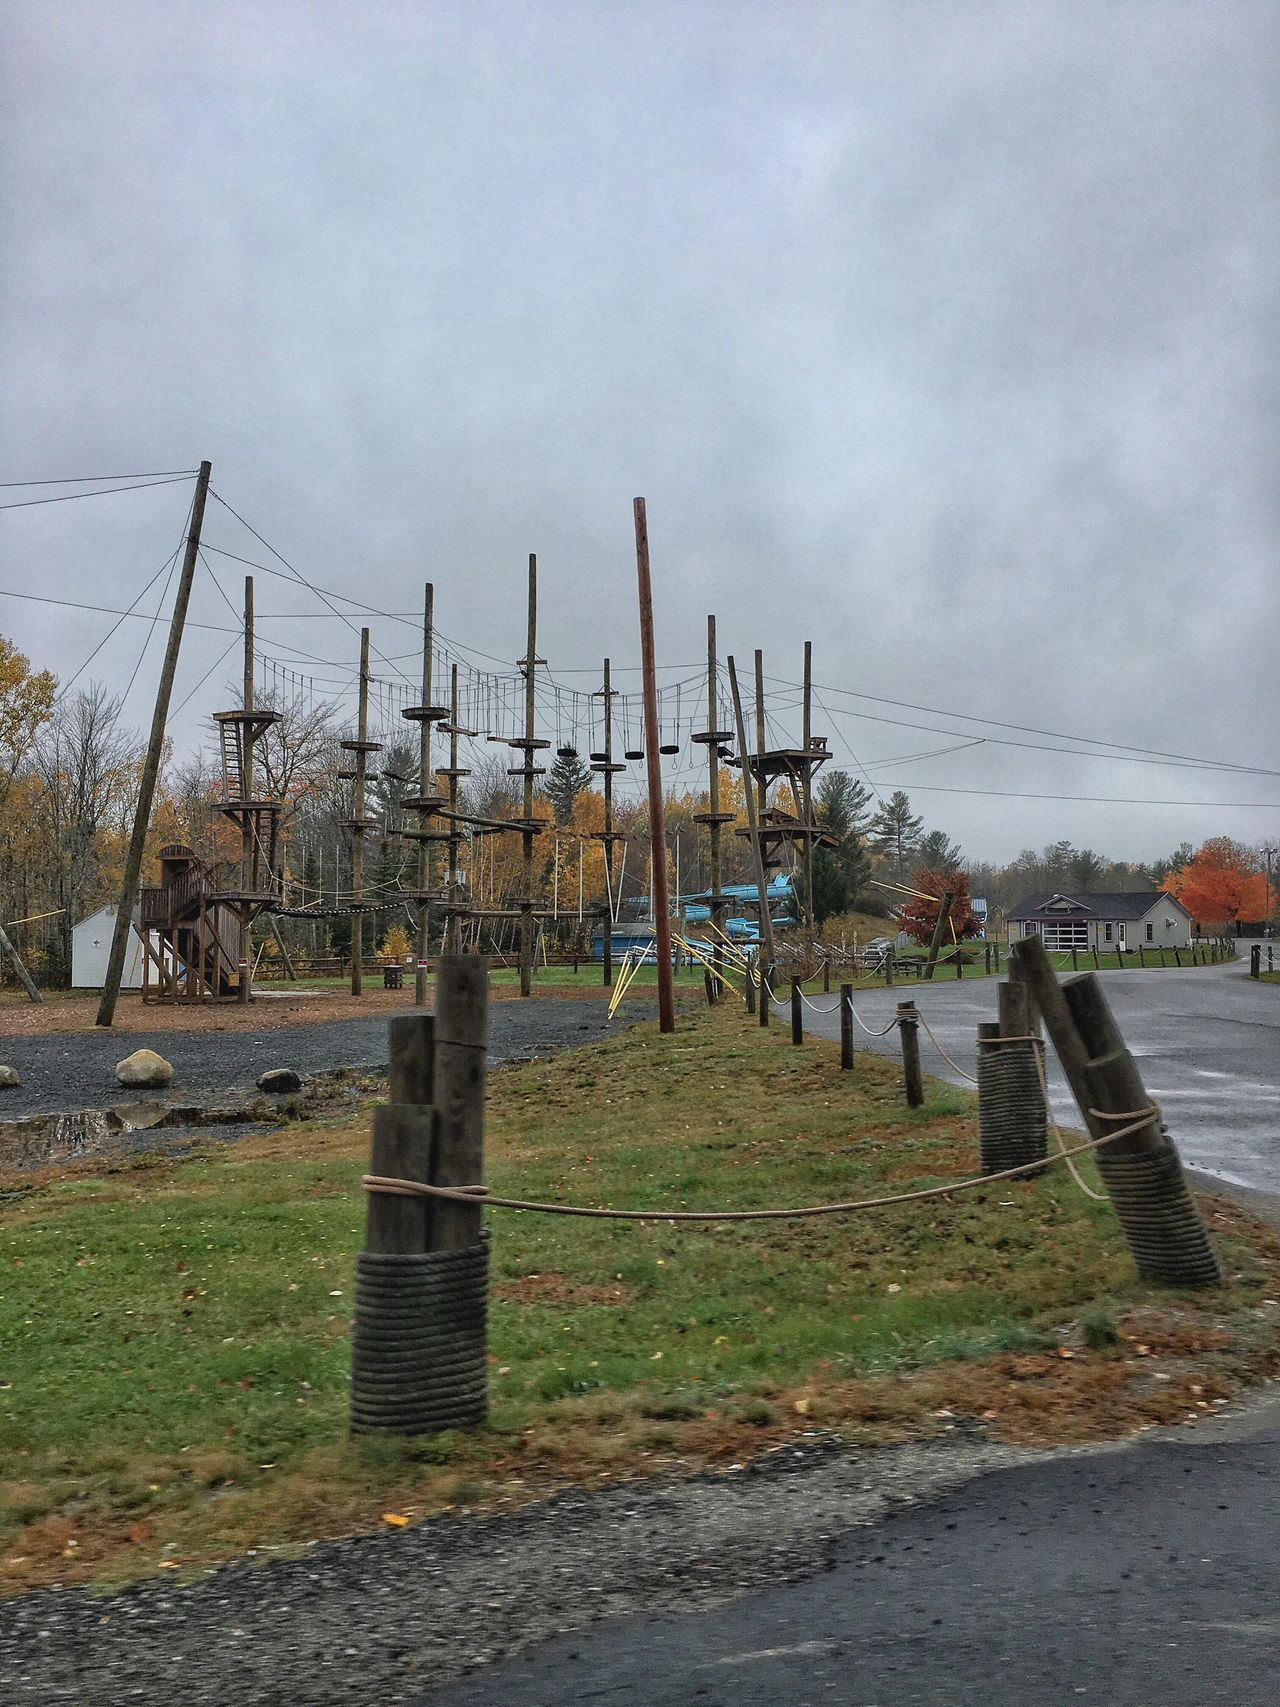 Roadside Day Autumn Scenery Fun Park Seasonal Rope Course Obstacle Course Water Slides Go Carts Mini Golf Sky Grass Field Transportation Landscape Outdoors Nature No People Trenton,ME